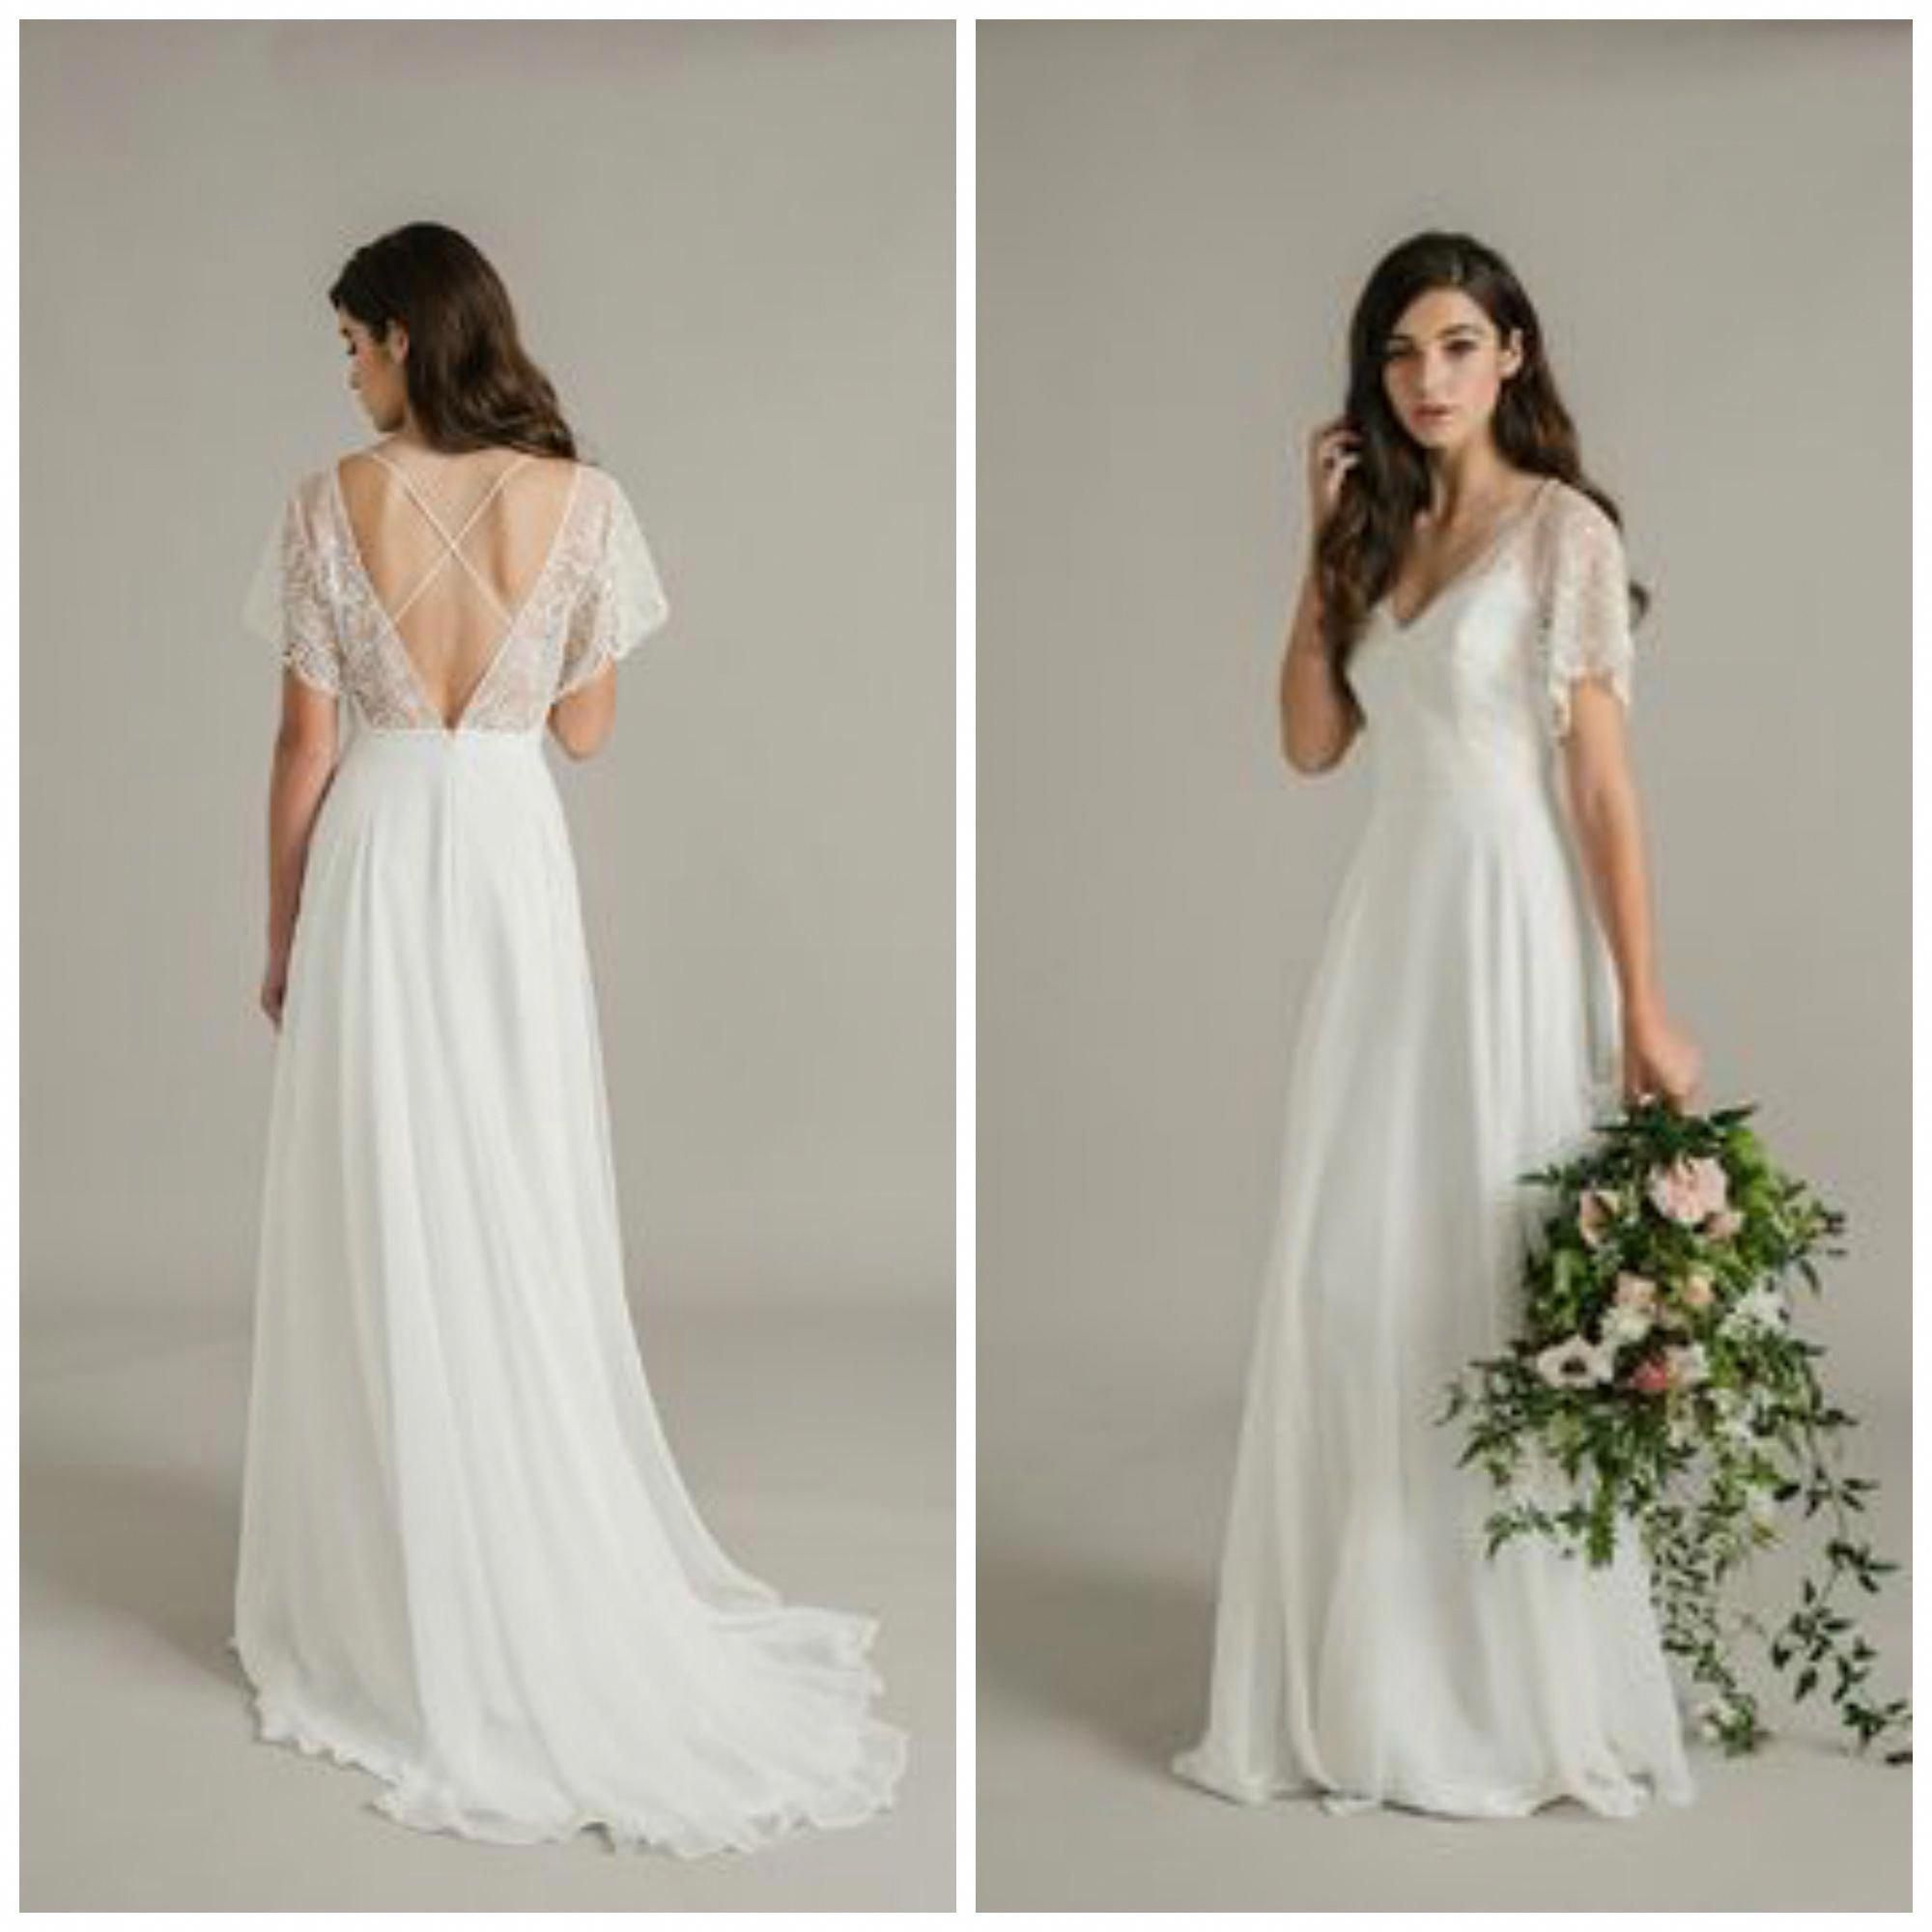 Couture Dresses Prom Dresses Under 100 Online Wedding Gowns With Price 20190219 Weddinggownla Boho Wedding Dress Wedding Dress Styles Simple Wedding Gowns [ 2000 x 2000 Pixel ]